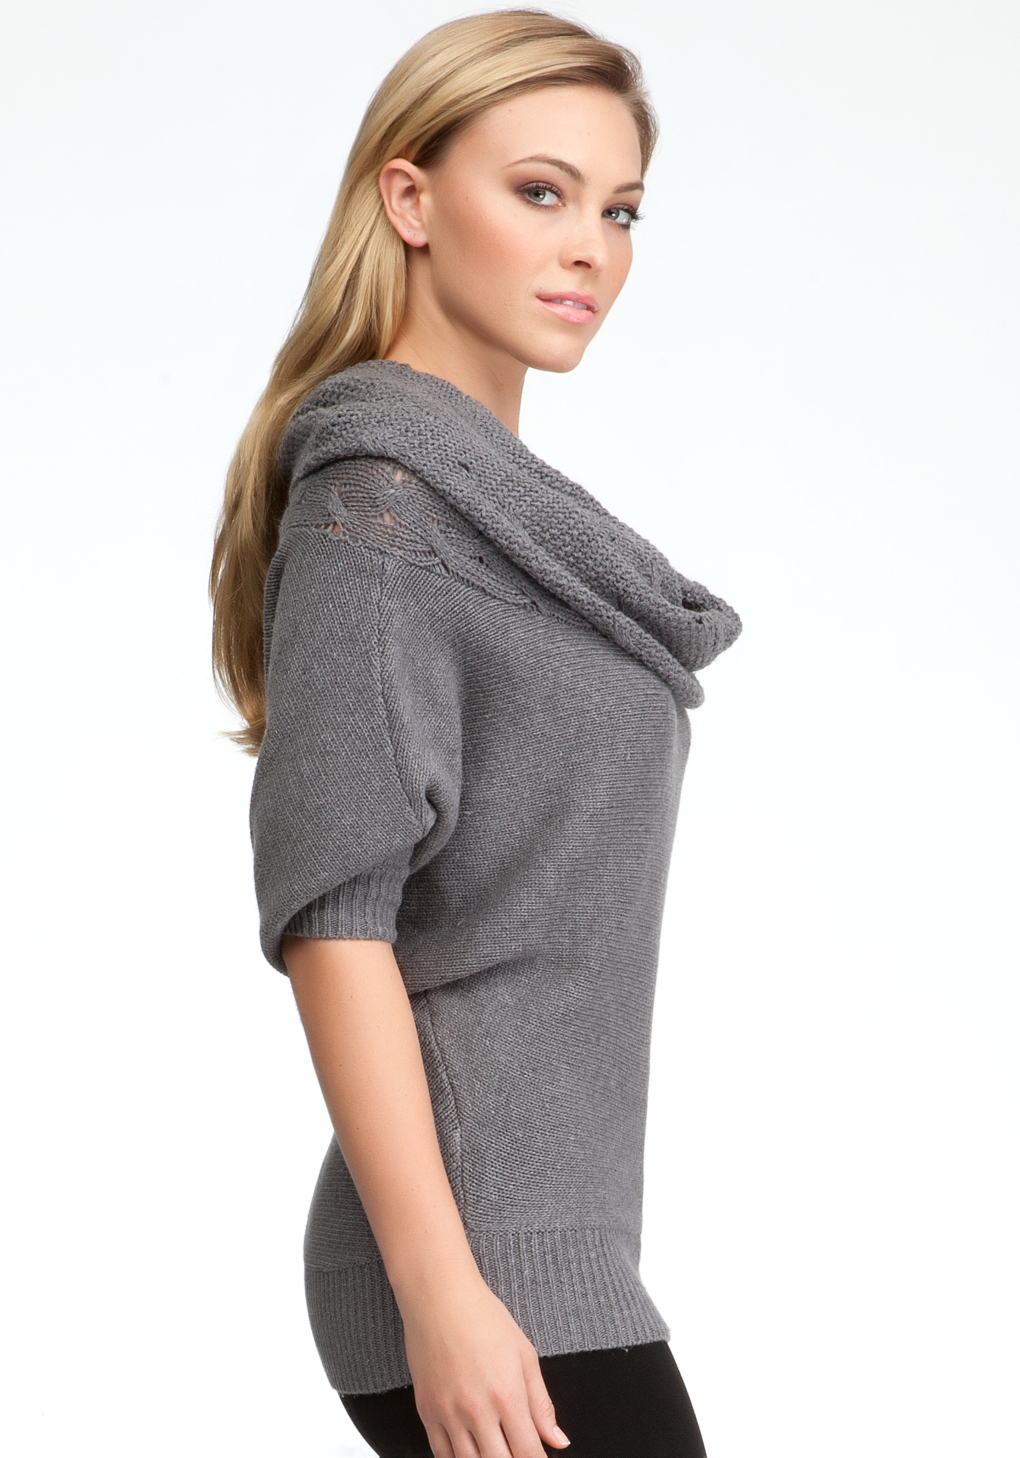 Bebe Cable Cowl Neck Batwing Sweater in Gray | Lyst